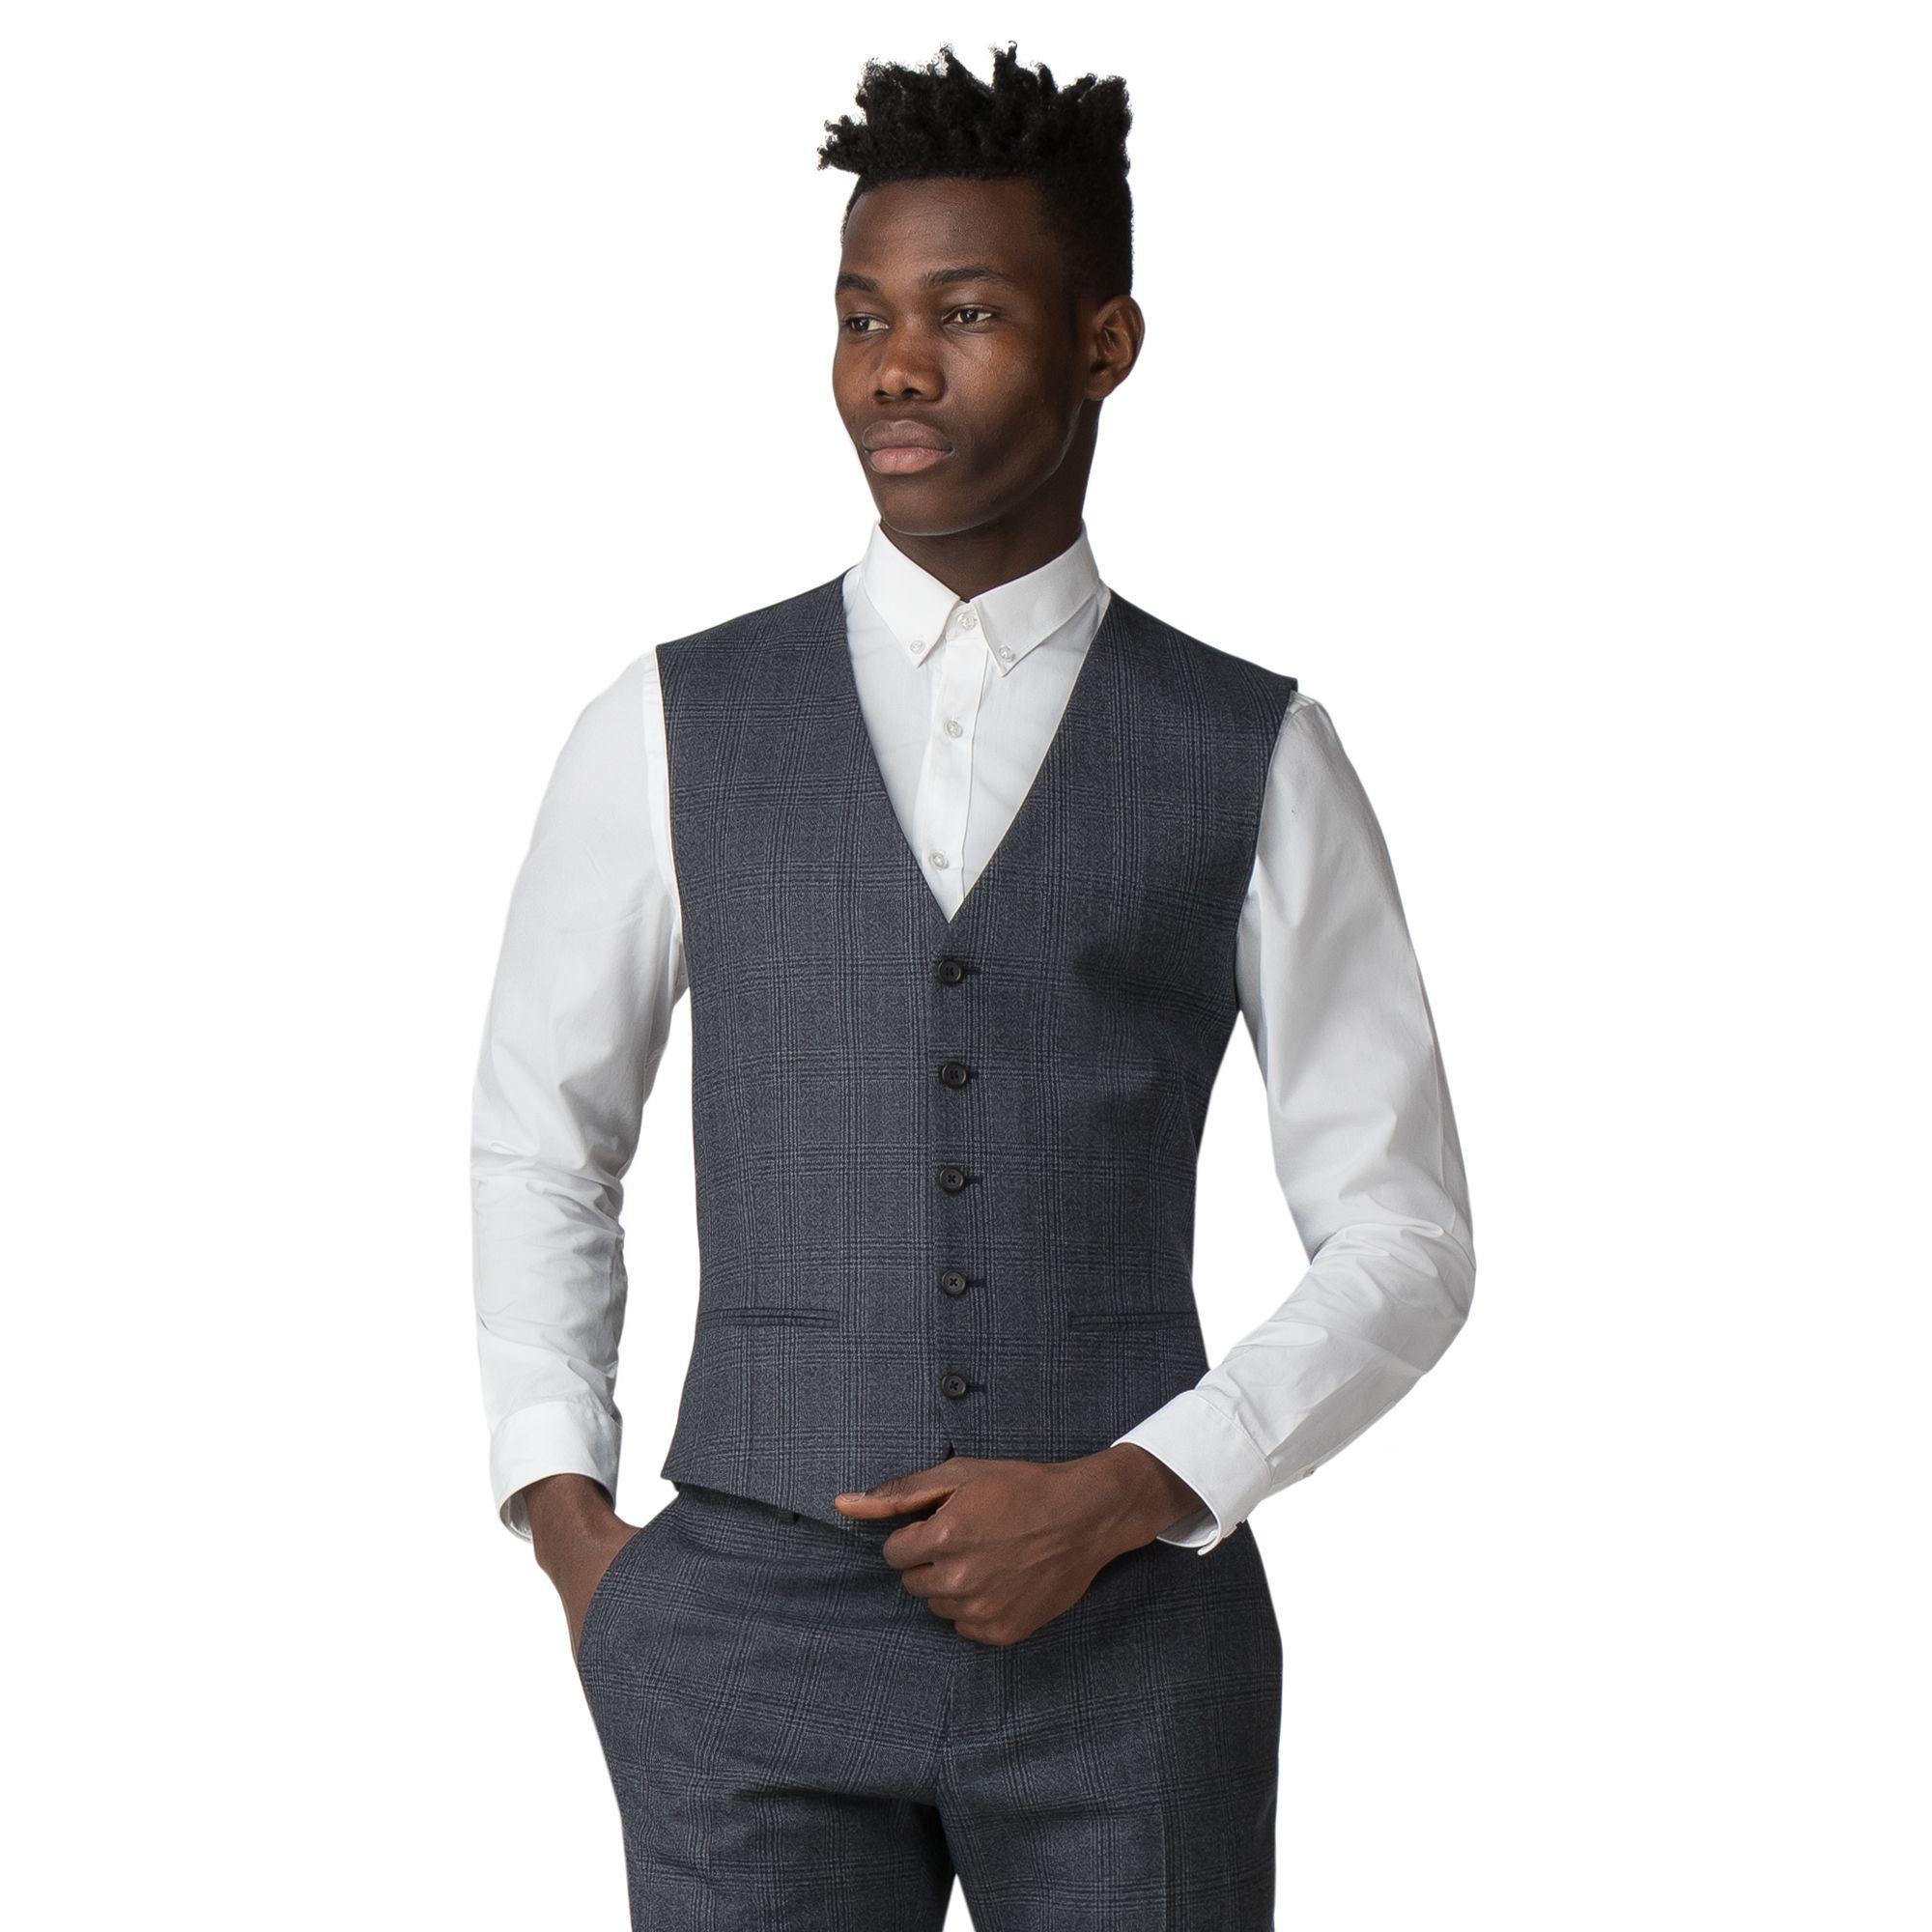 ed7ca589 Red Herring Bright Blue Textured Check Slim Fit Waistcoat in Blue ...